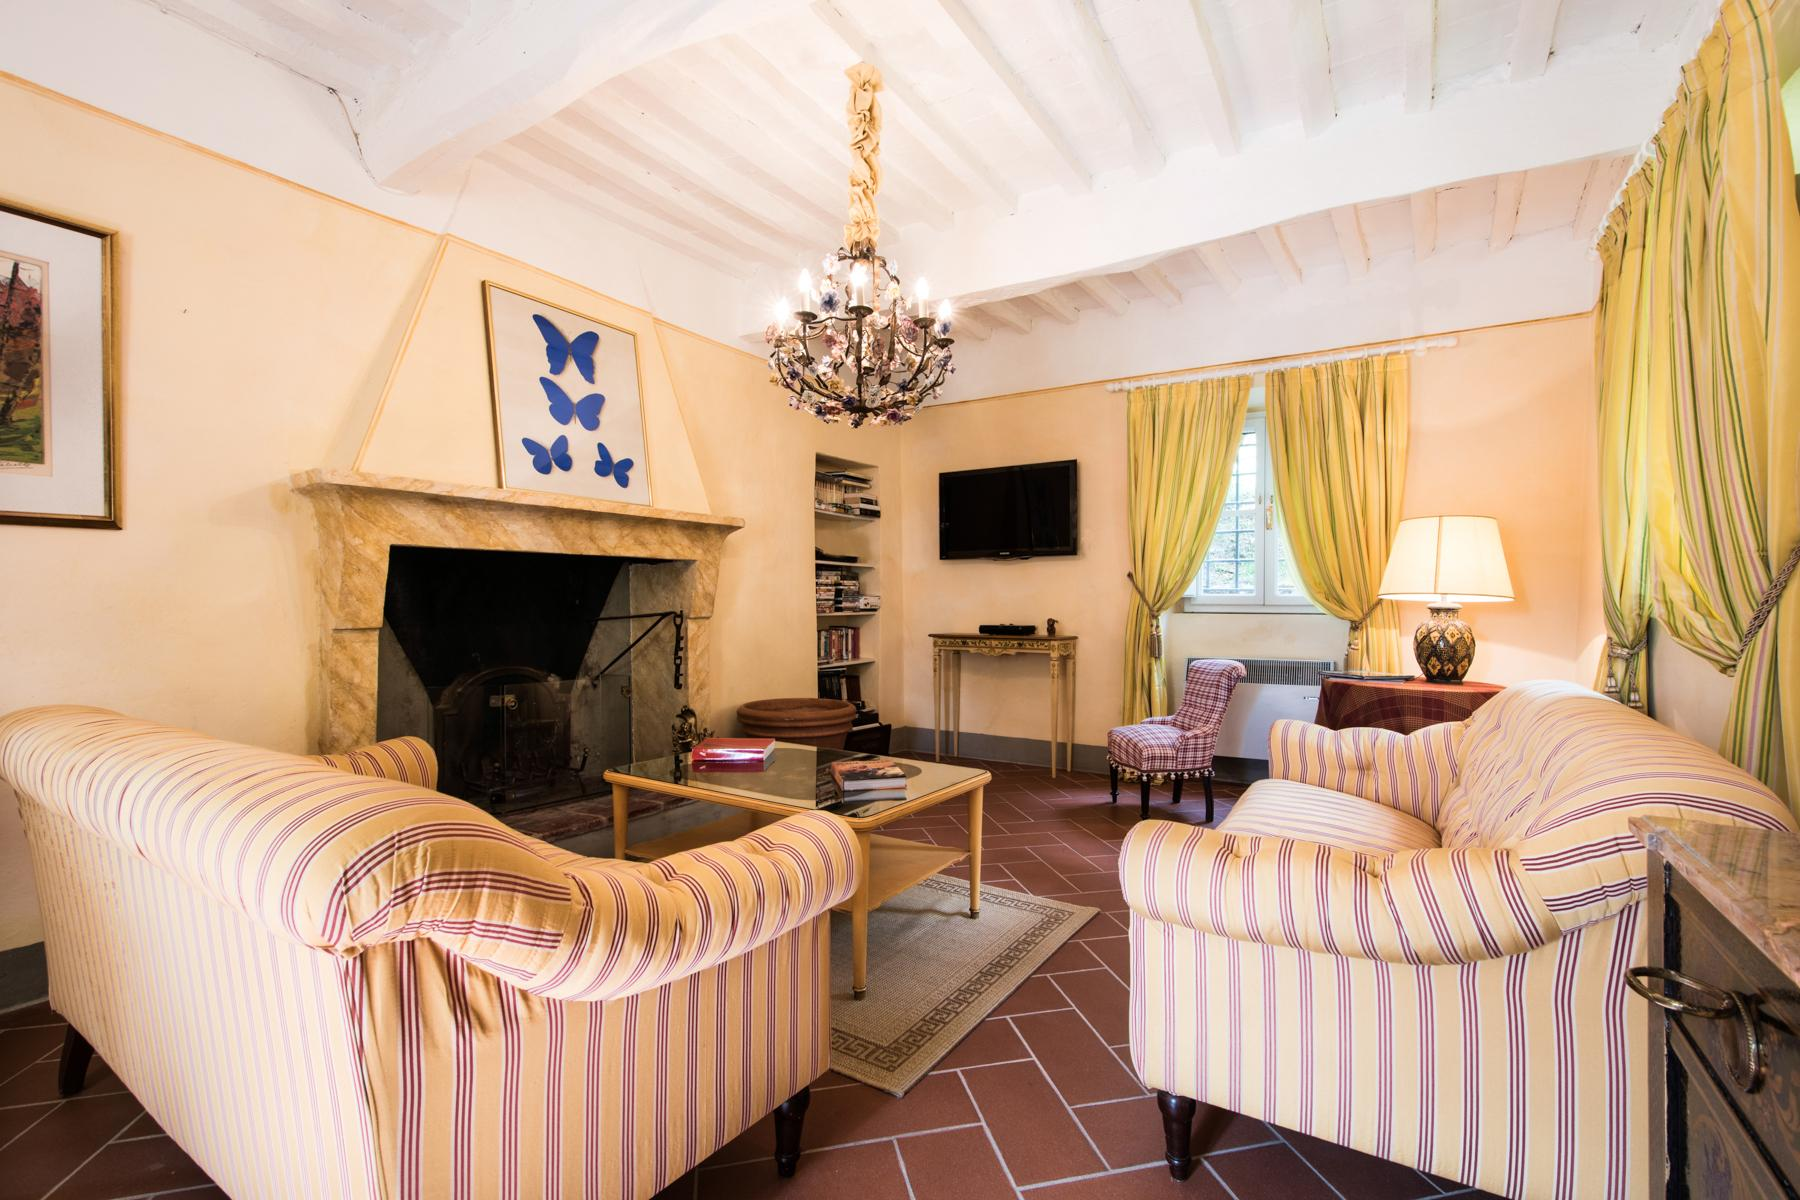 Marvelous villa in the countryside of Lucca - 28